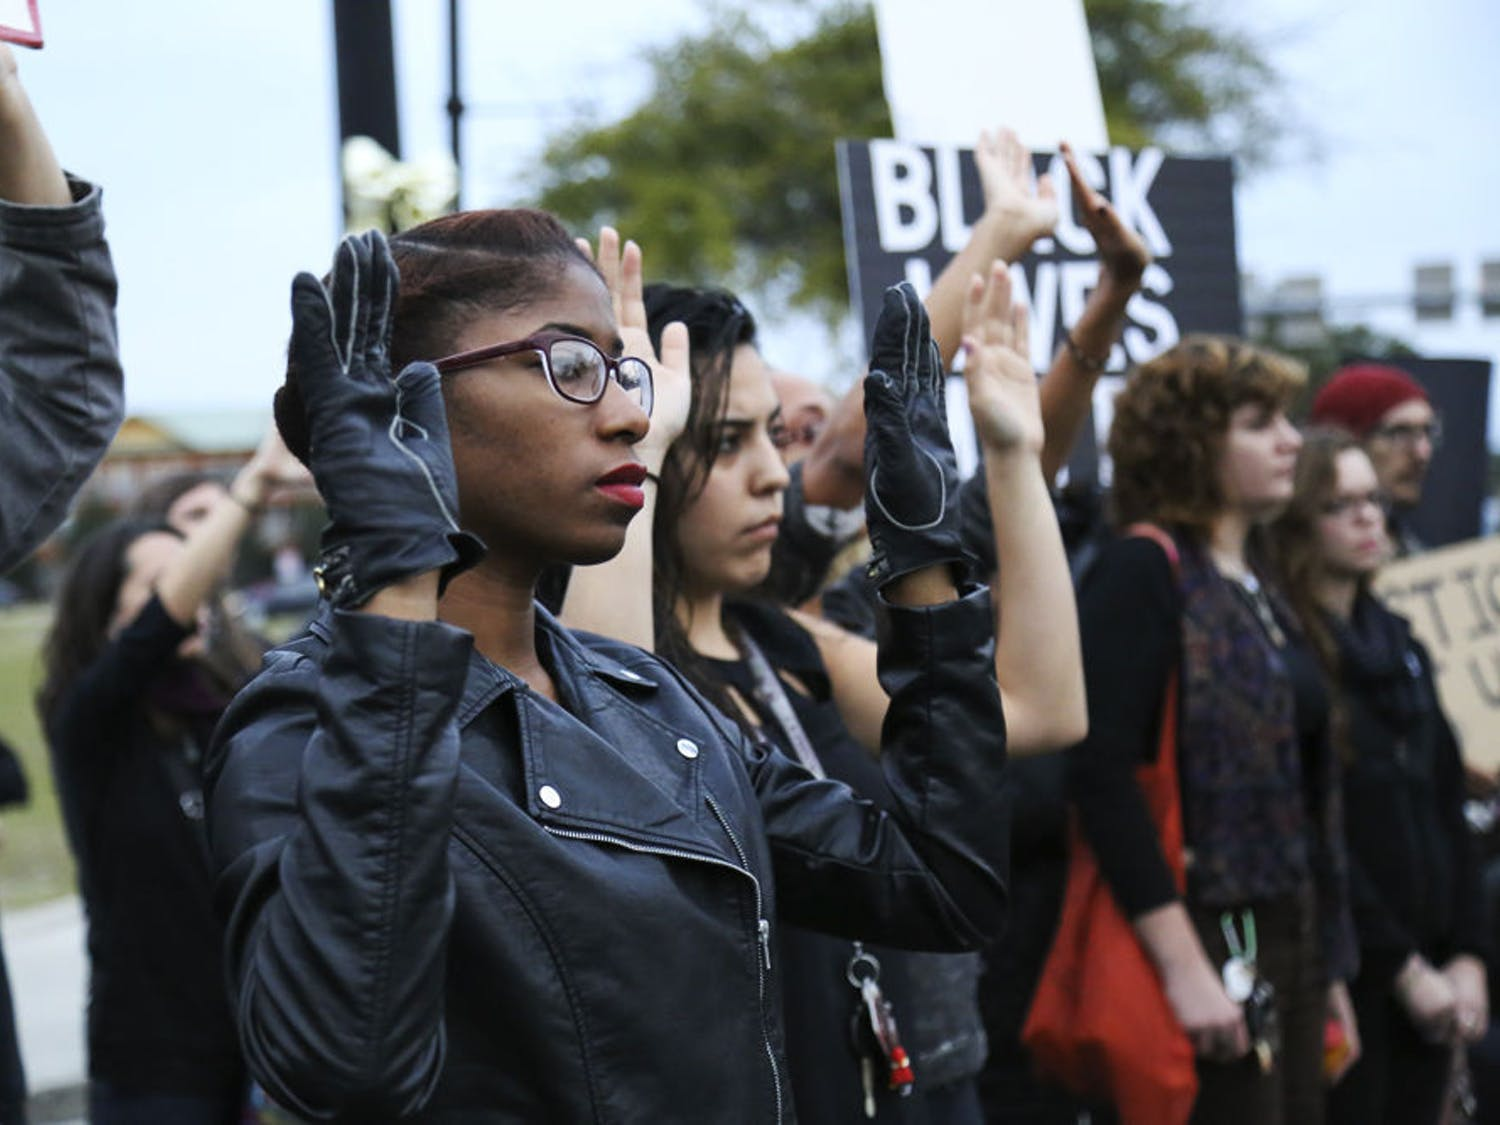 Ashley Dunbar, a 24-year-old UF law graduate student, raises her hands during the #BLACKSLIVESMATTER march at the intersection of 13th Street and University Avenue Monday afternoon.